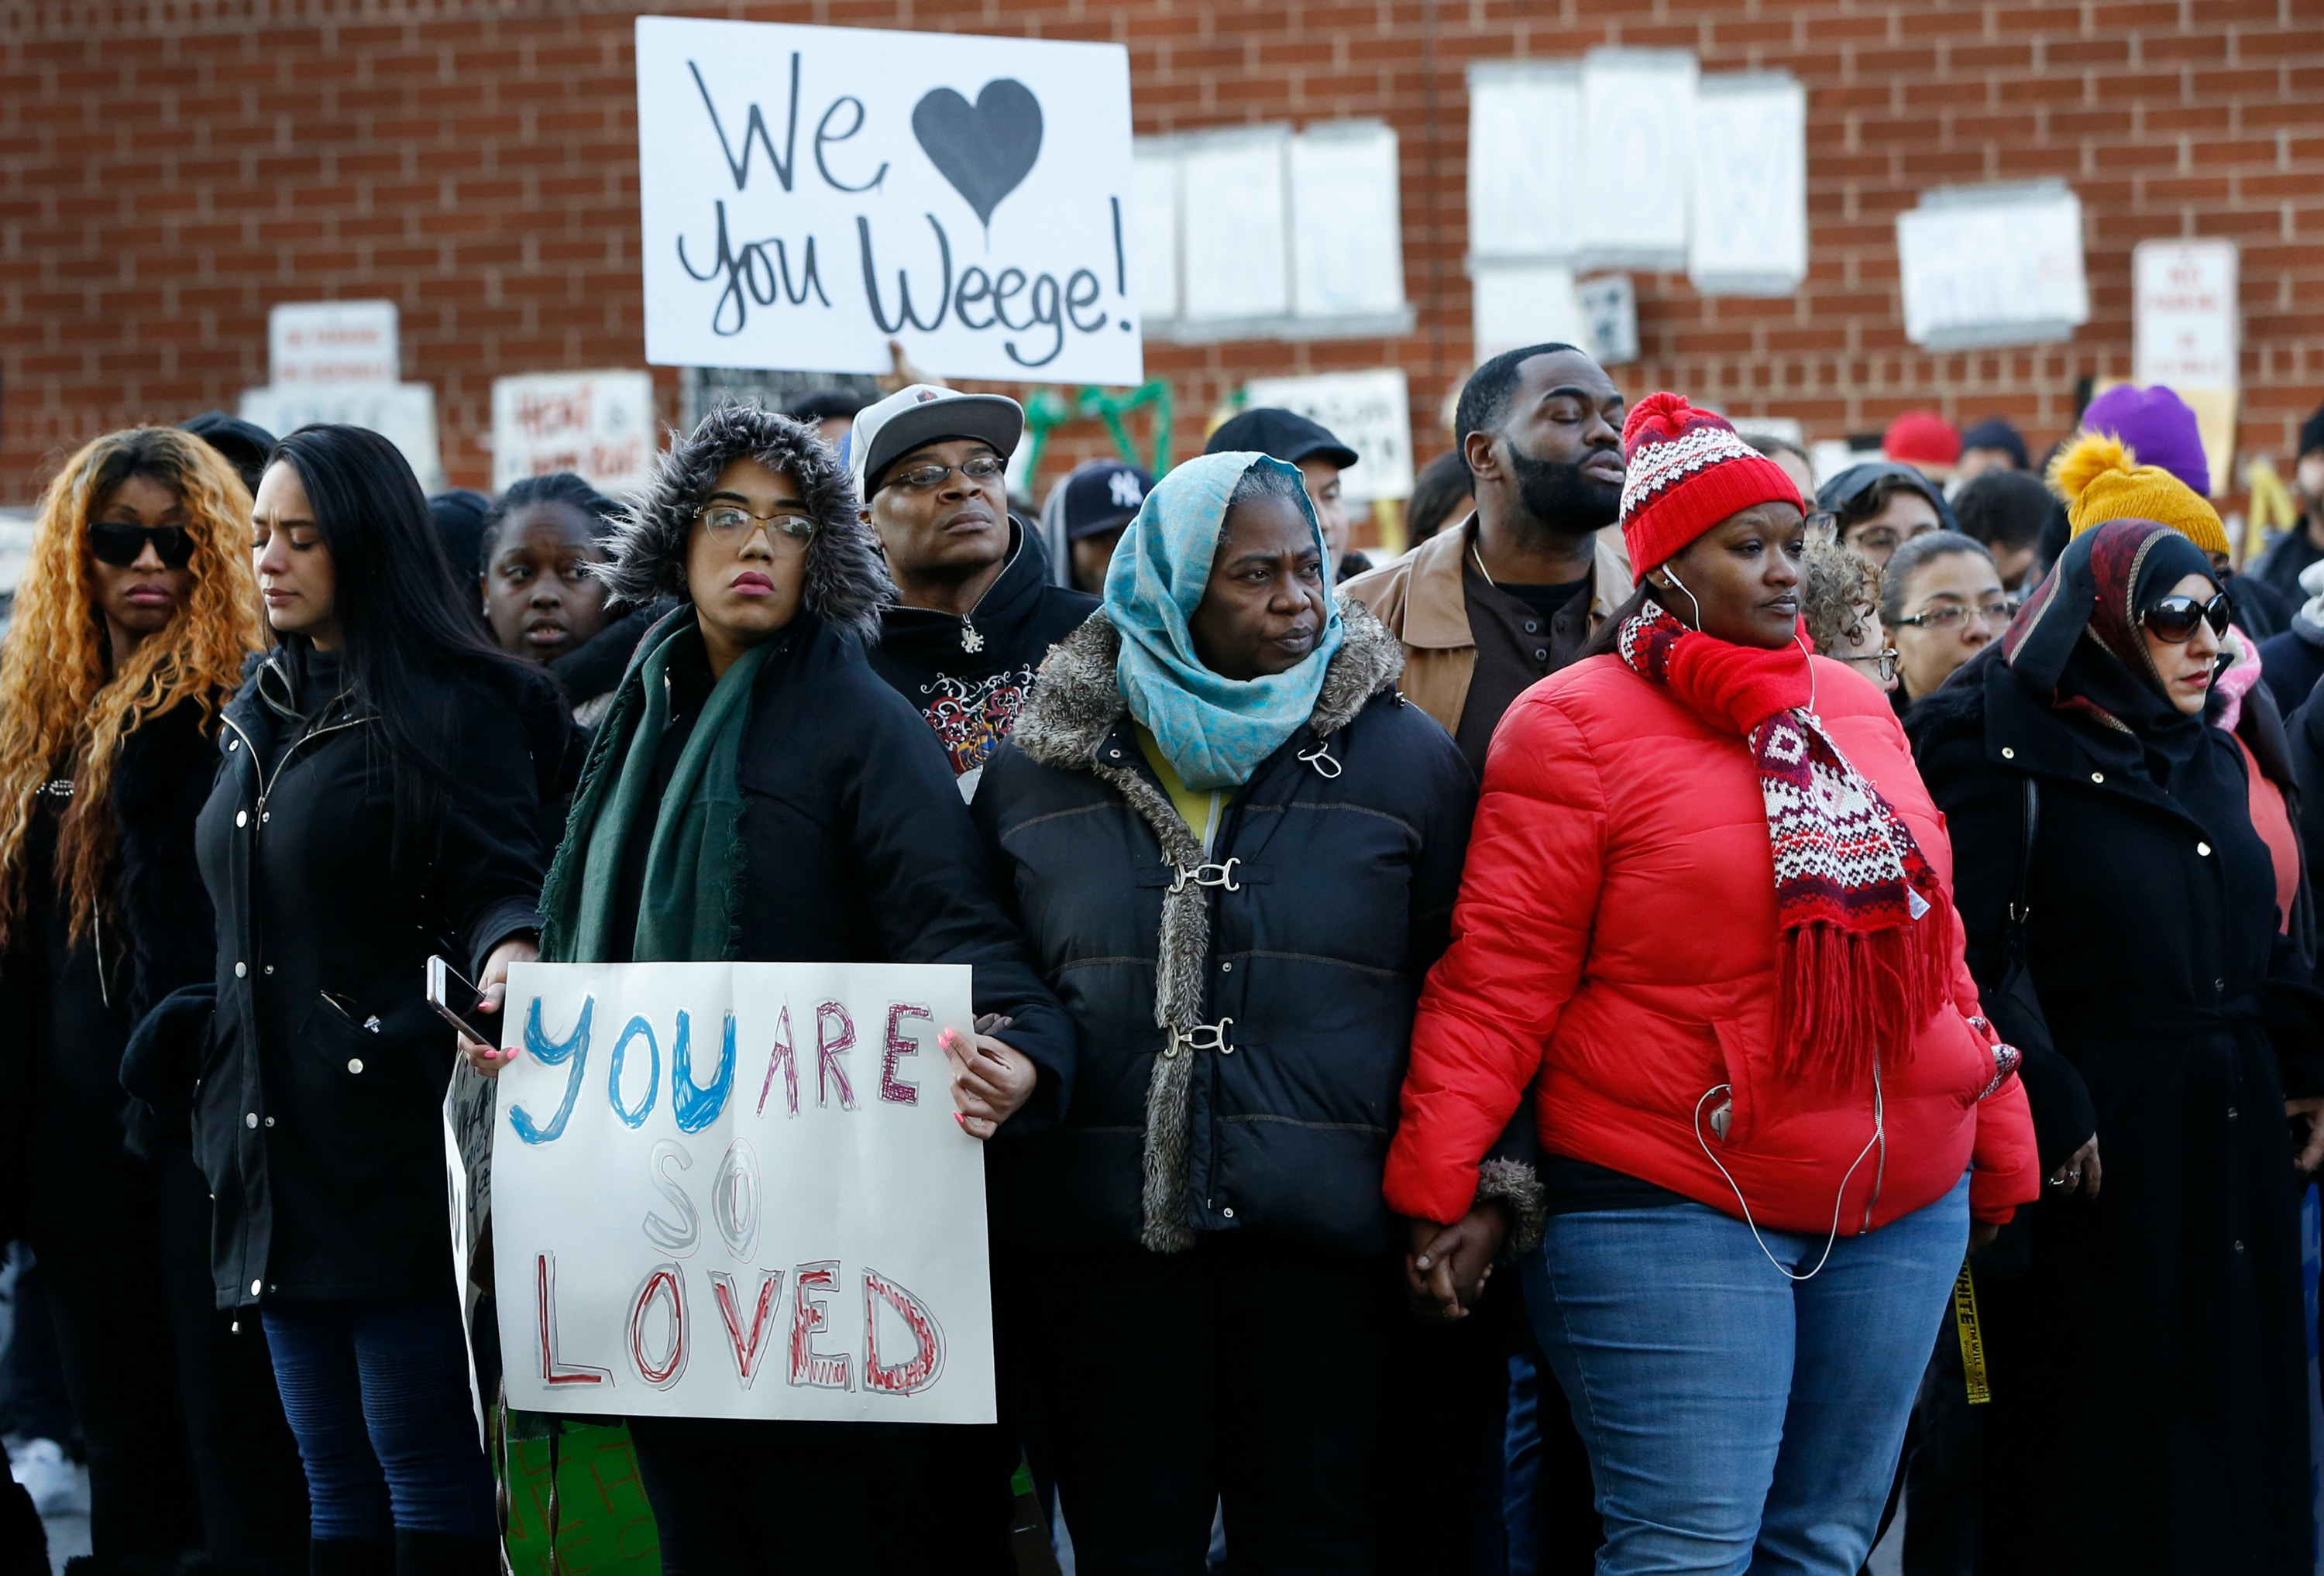 Protesters and family members of inmates hold hands while forming a prayer circle outside the Metropolitan Detention Center in New York on Sunday, Feb. 3, 2019. Some demonstrators protesting the lack of heat and electricity at the federal detention center in New York City attempted to enter the facility Sunday, and witnesses said guards drove them back with pushes, shoves and pepper spray. (AP Photo/Kathy Willens)